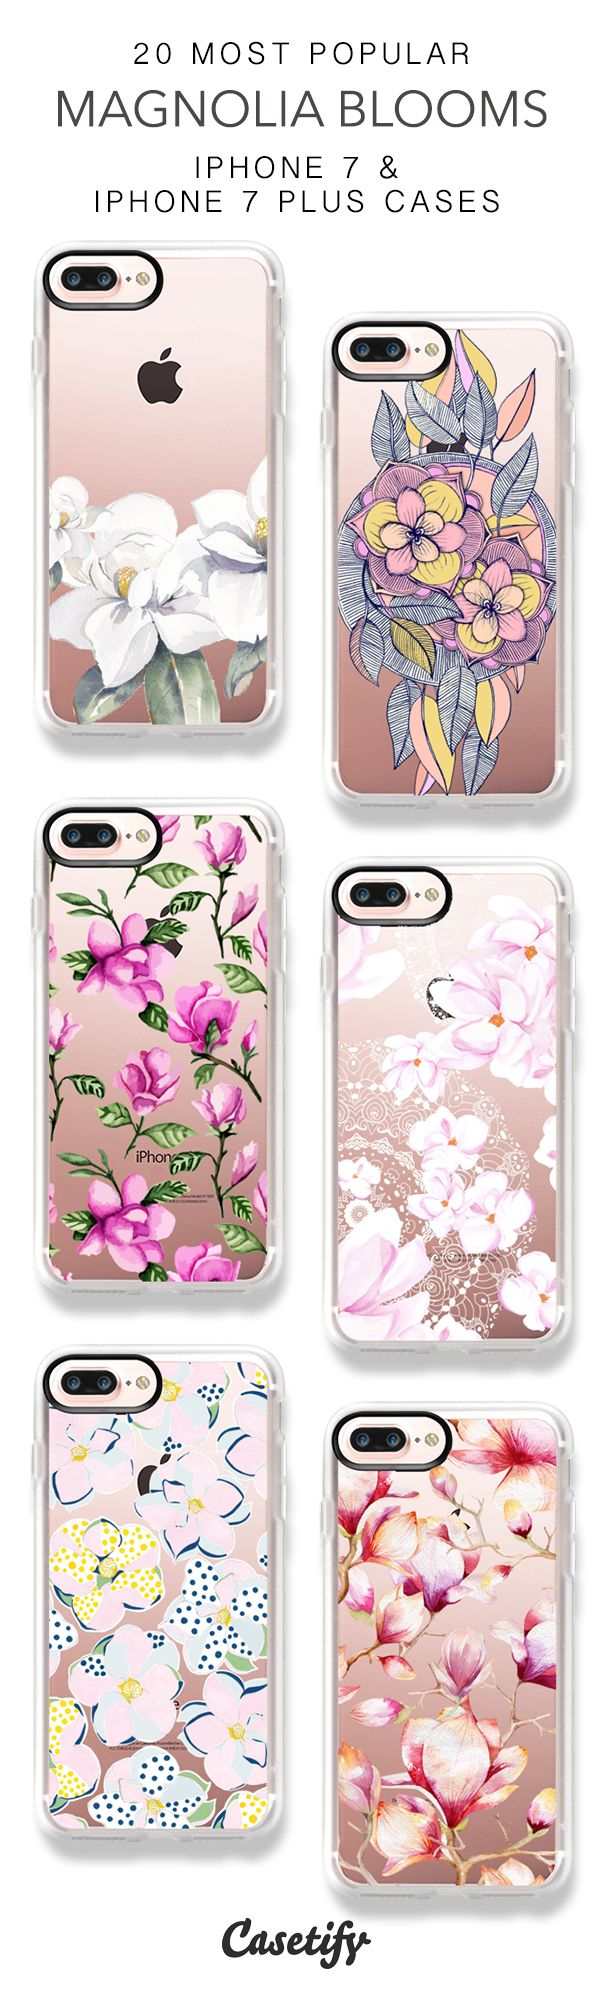 20 Most Popular Magnolia Blooms Protective iPhone 7 Cases and iPhone 7 Plus Cases. More Flower iPhone case here > https://www.casetify.com/collections/top_100_designs#/?vc=YuBDTcGKNC